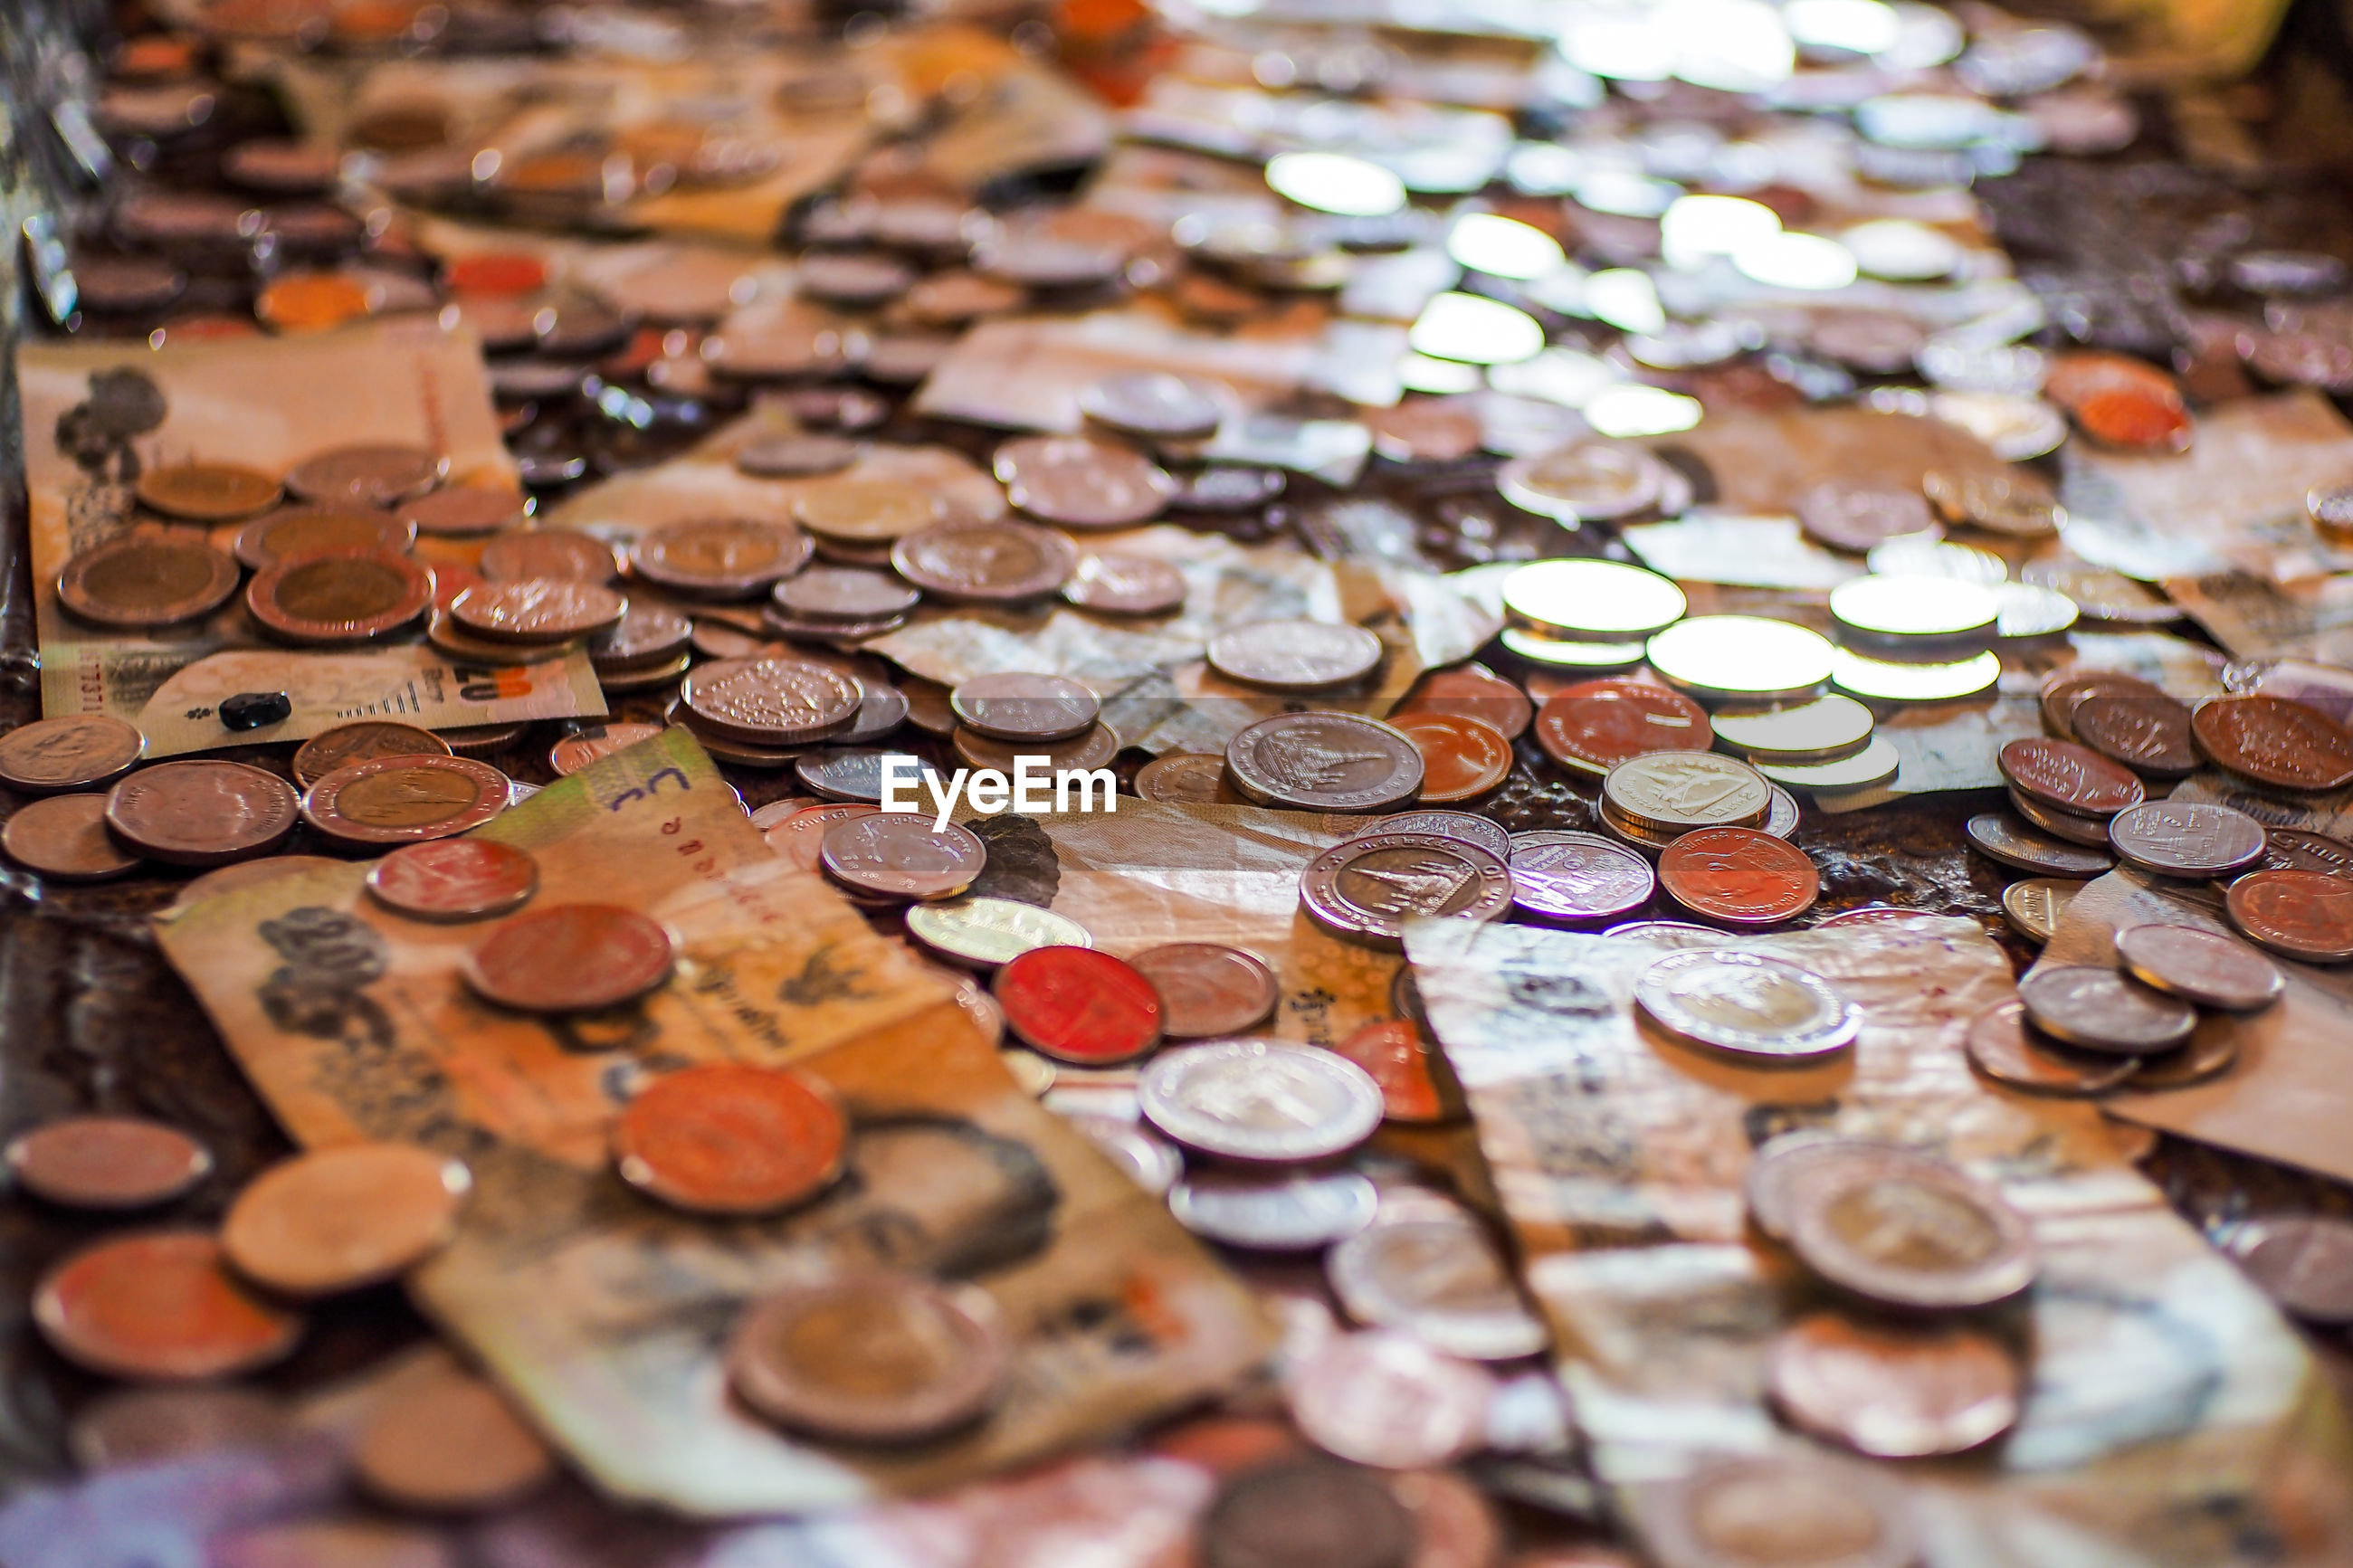 Full frame shot of paper currency and coins